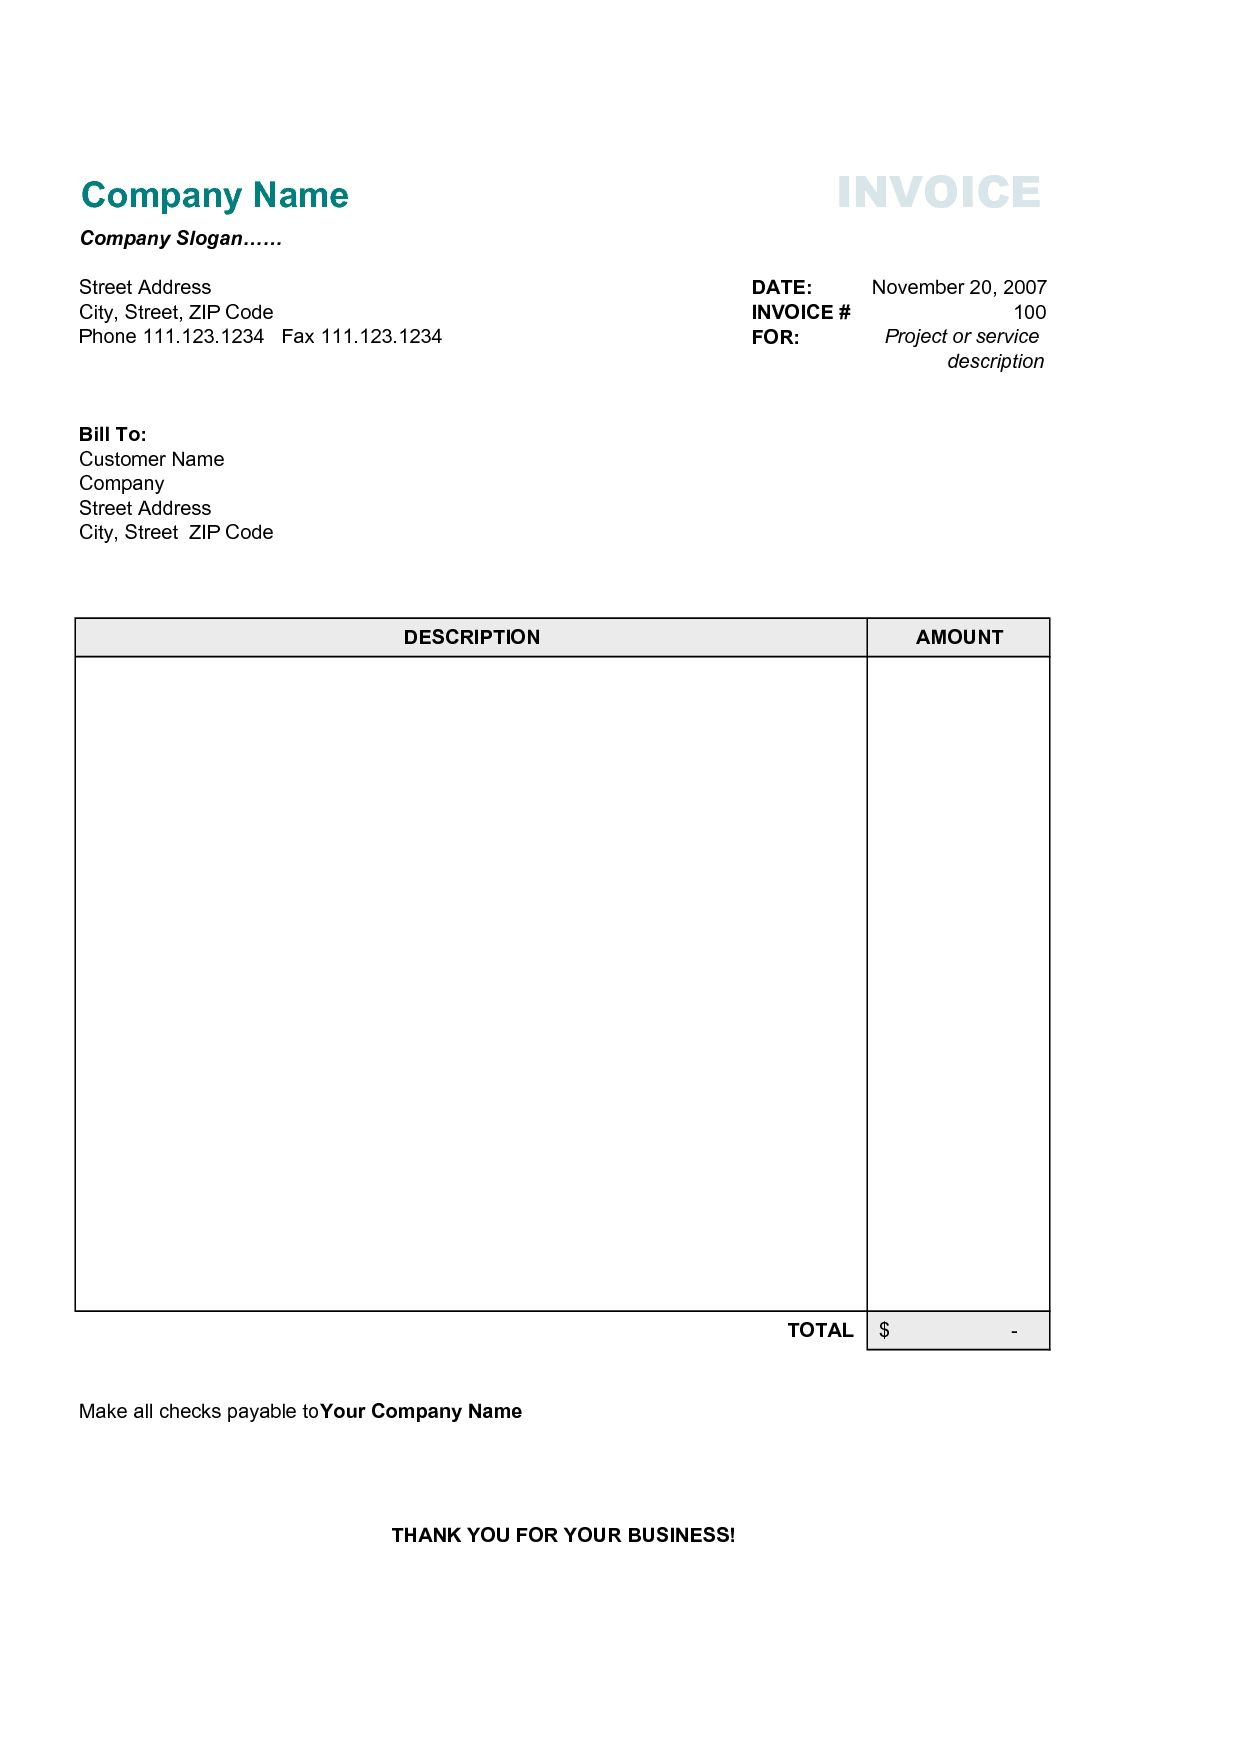 Free Simple Invoice Pertaminico - Free basic invoice template for service business